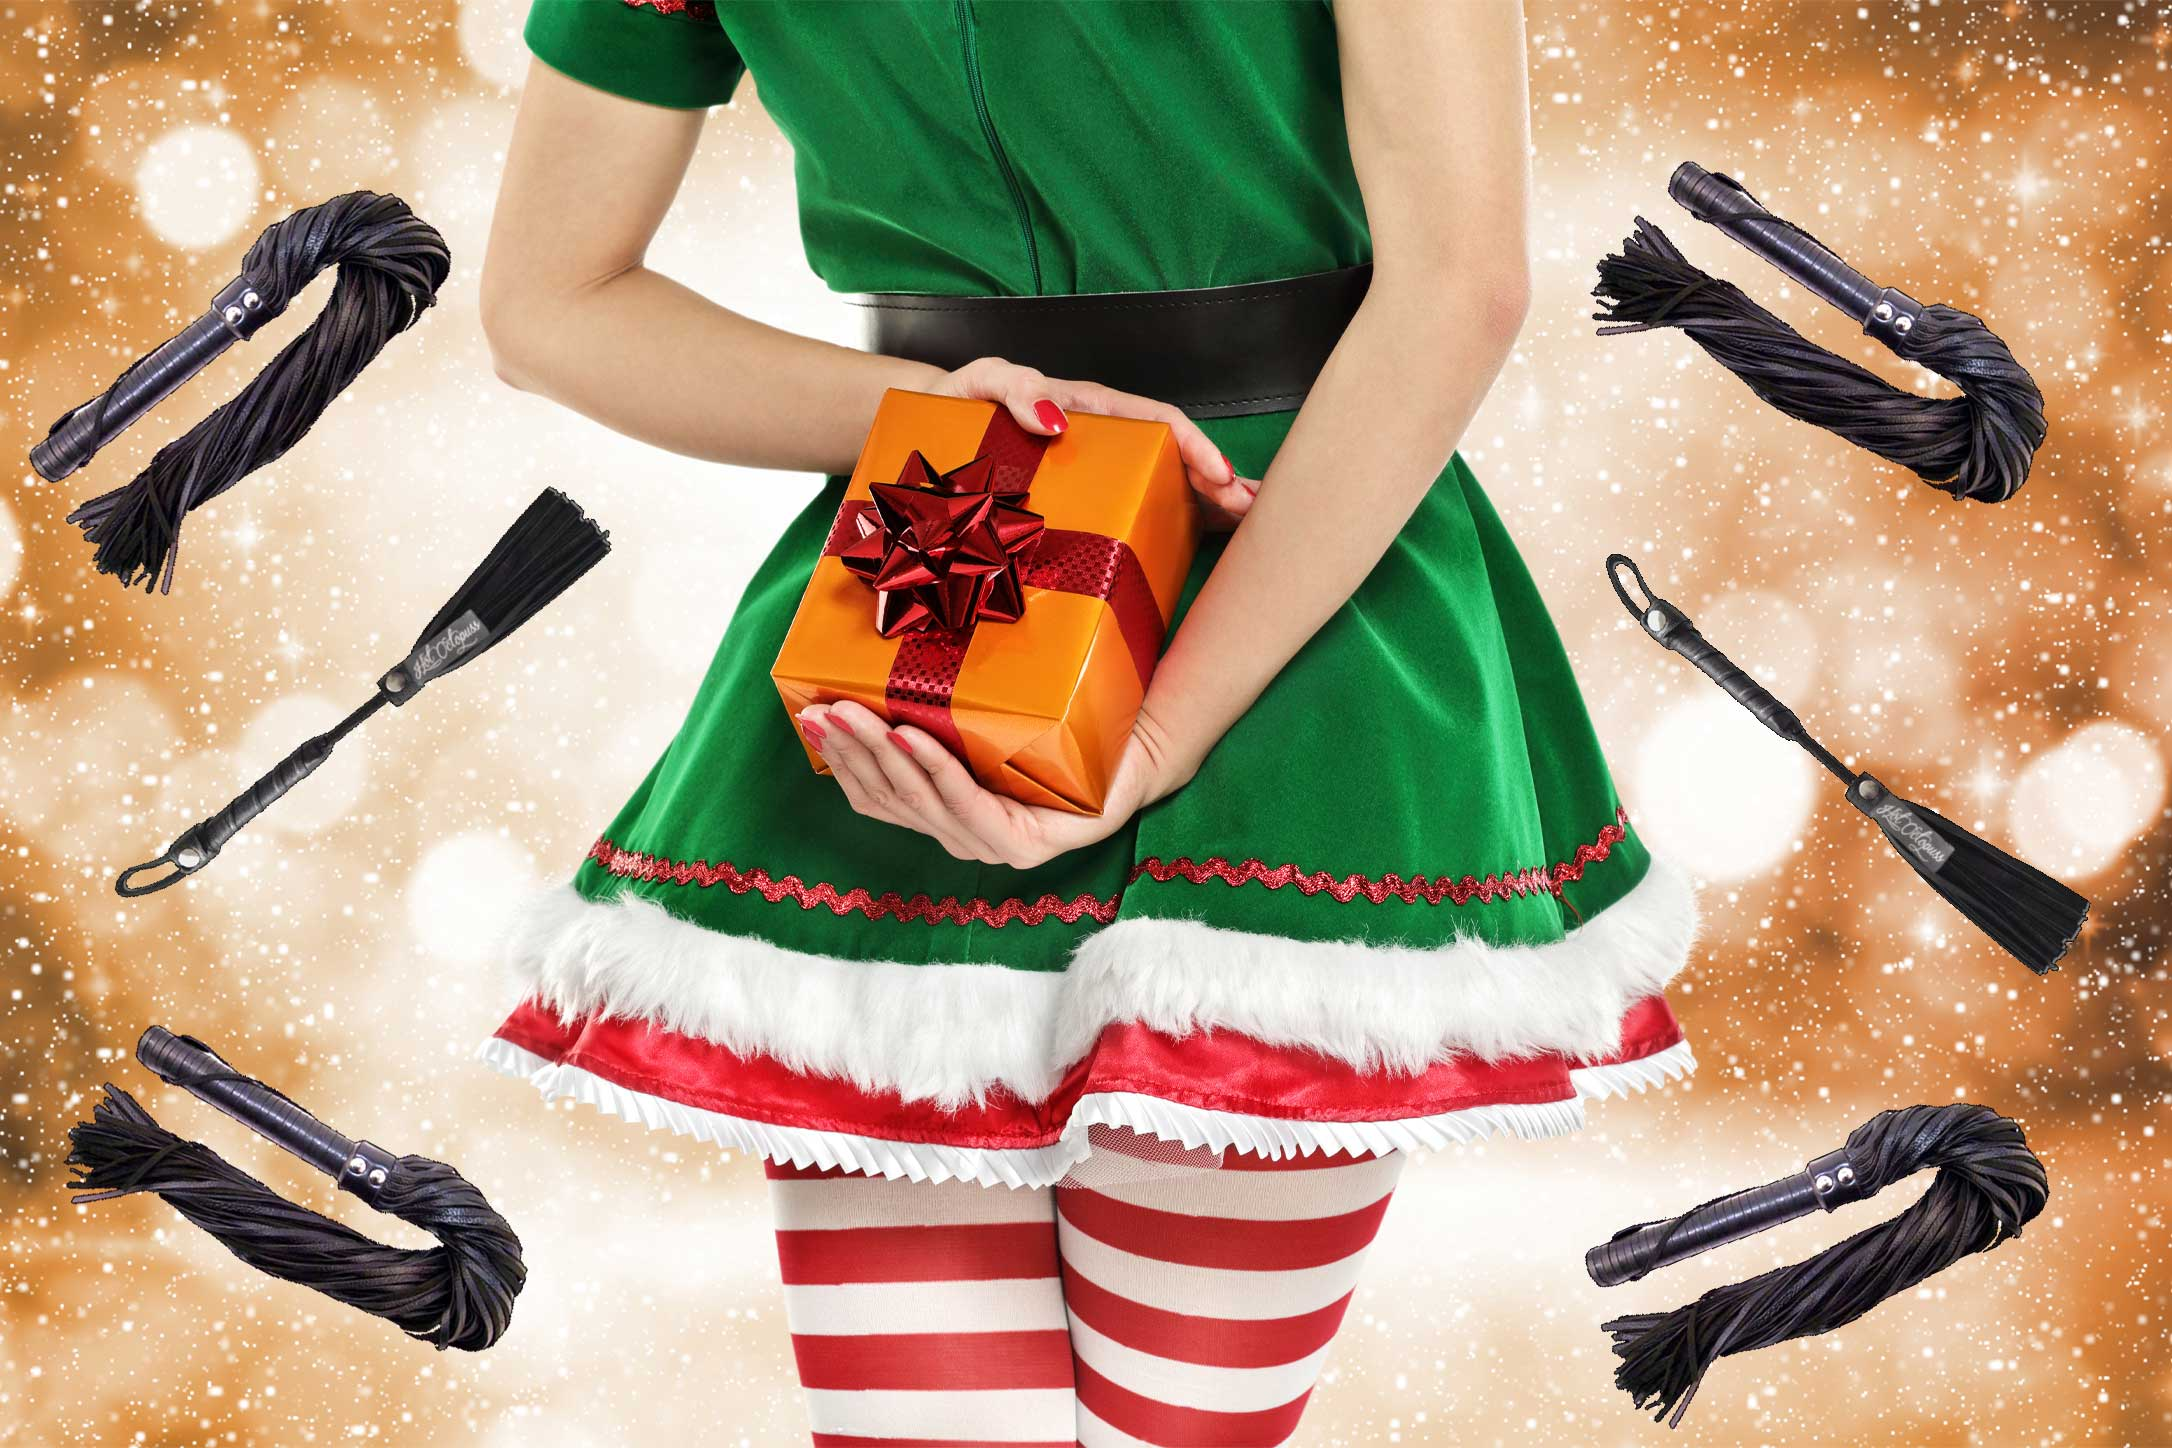 Sexy elf in green holding an orange present, surrounded by leather BDSM floggers